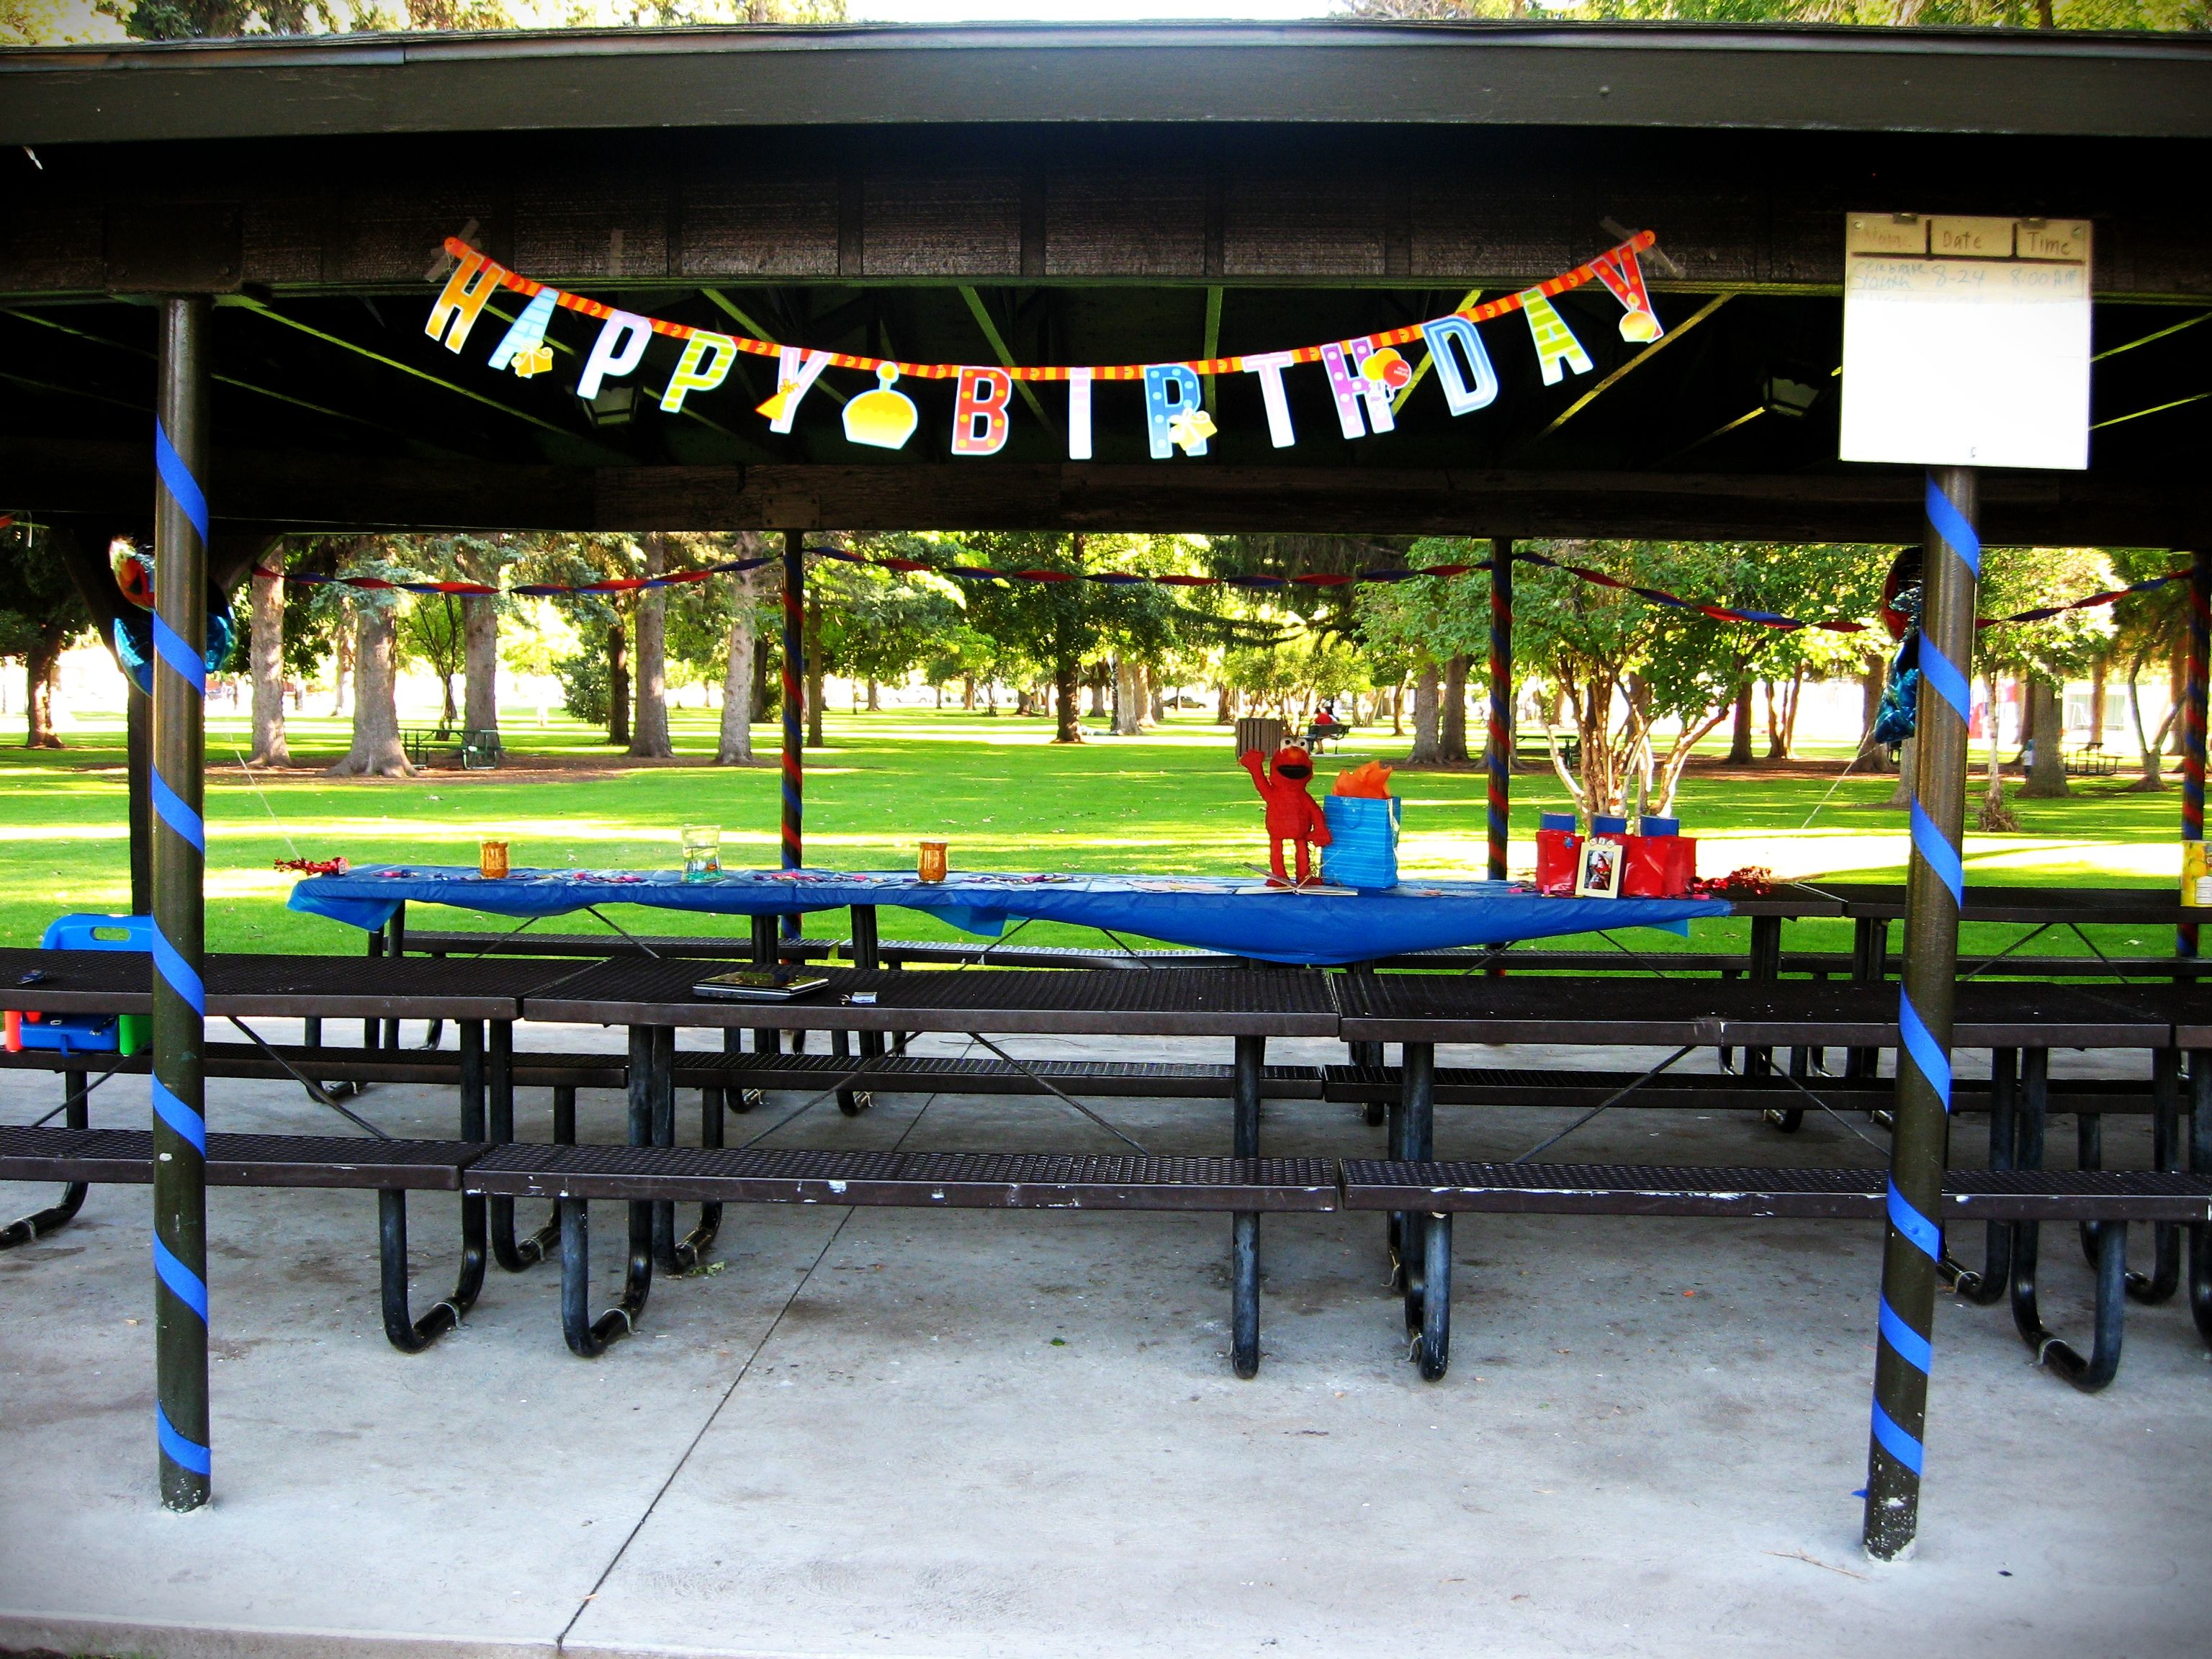 Outdoor party at a park pavilion decorated using streamers banner